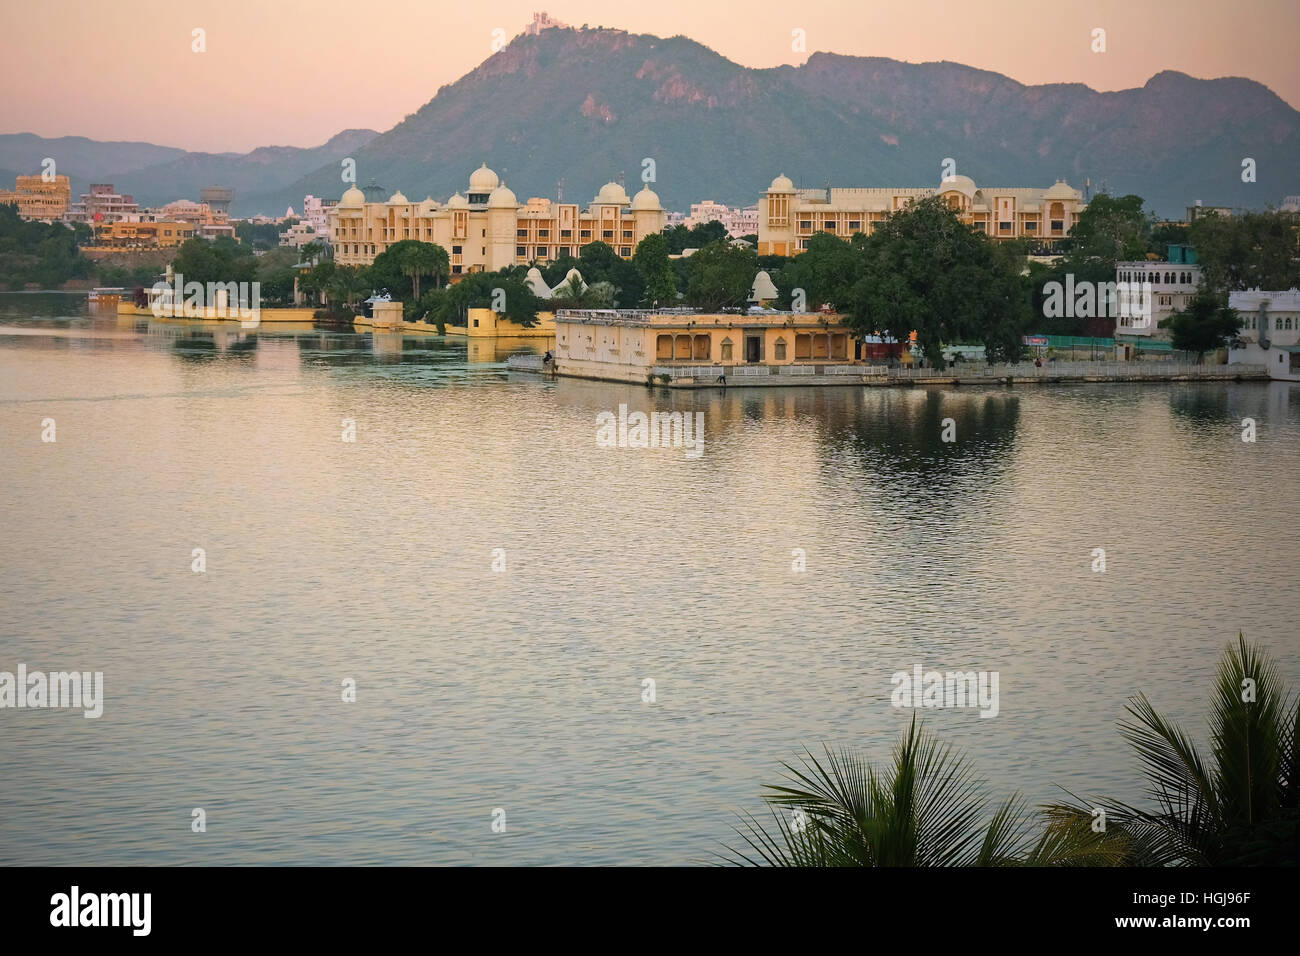 The Indian city of Udaipur at dusk in early winter. It is situated on the edge of Lake Pichola in Rajasthan - Stock Image